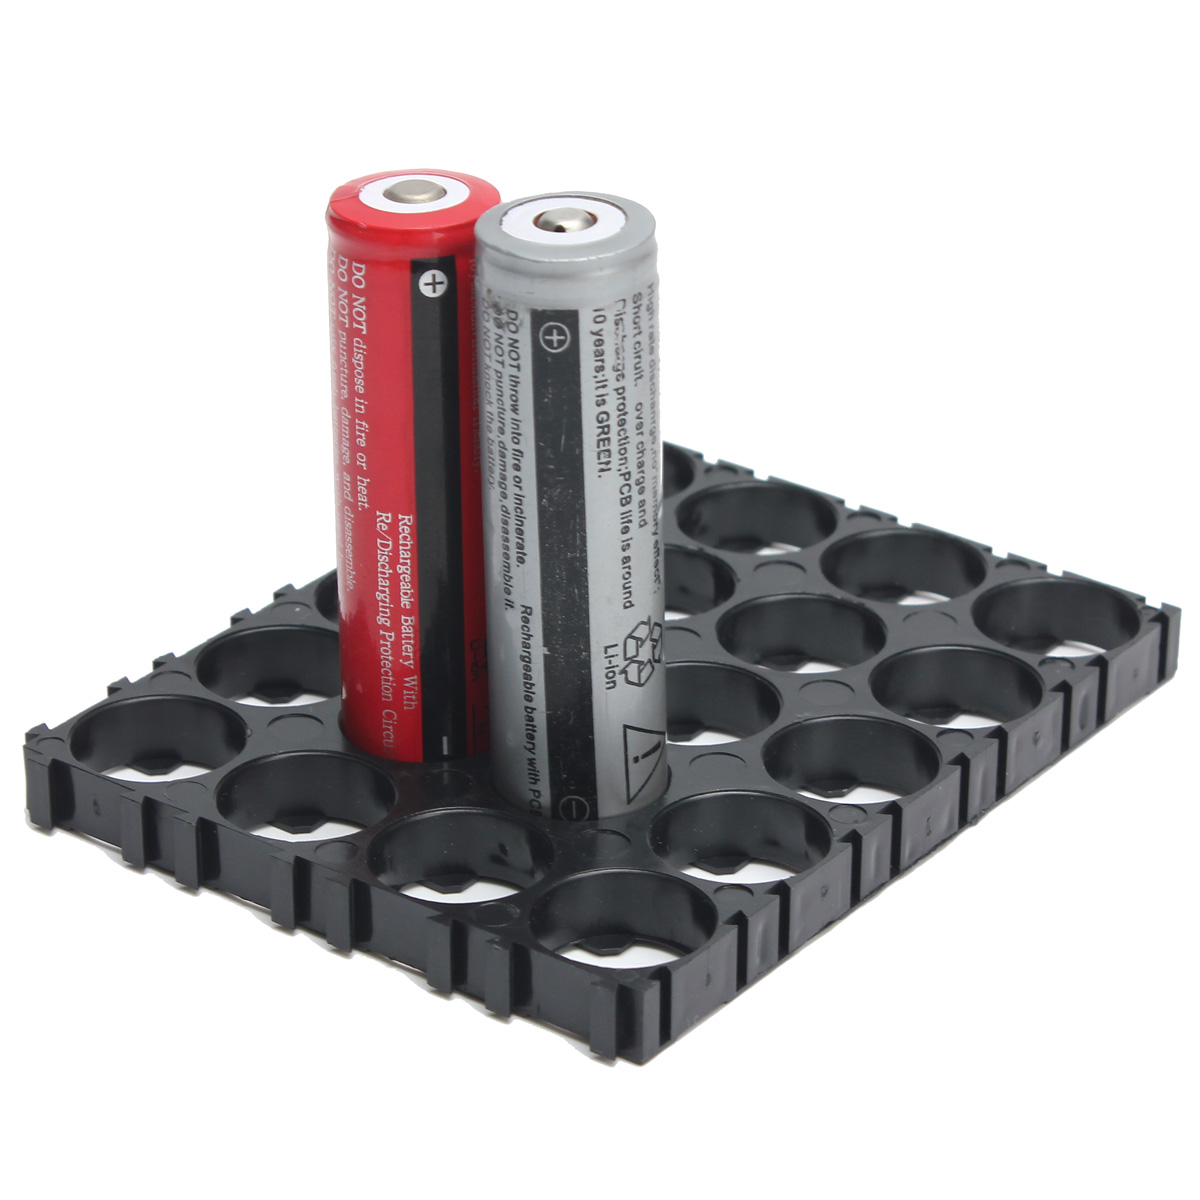 High quality 18650 battery holder bracket ABS material anti vibration Cylindrical Battery Spacers Holder for 20x 18650 batteries